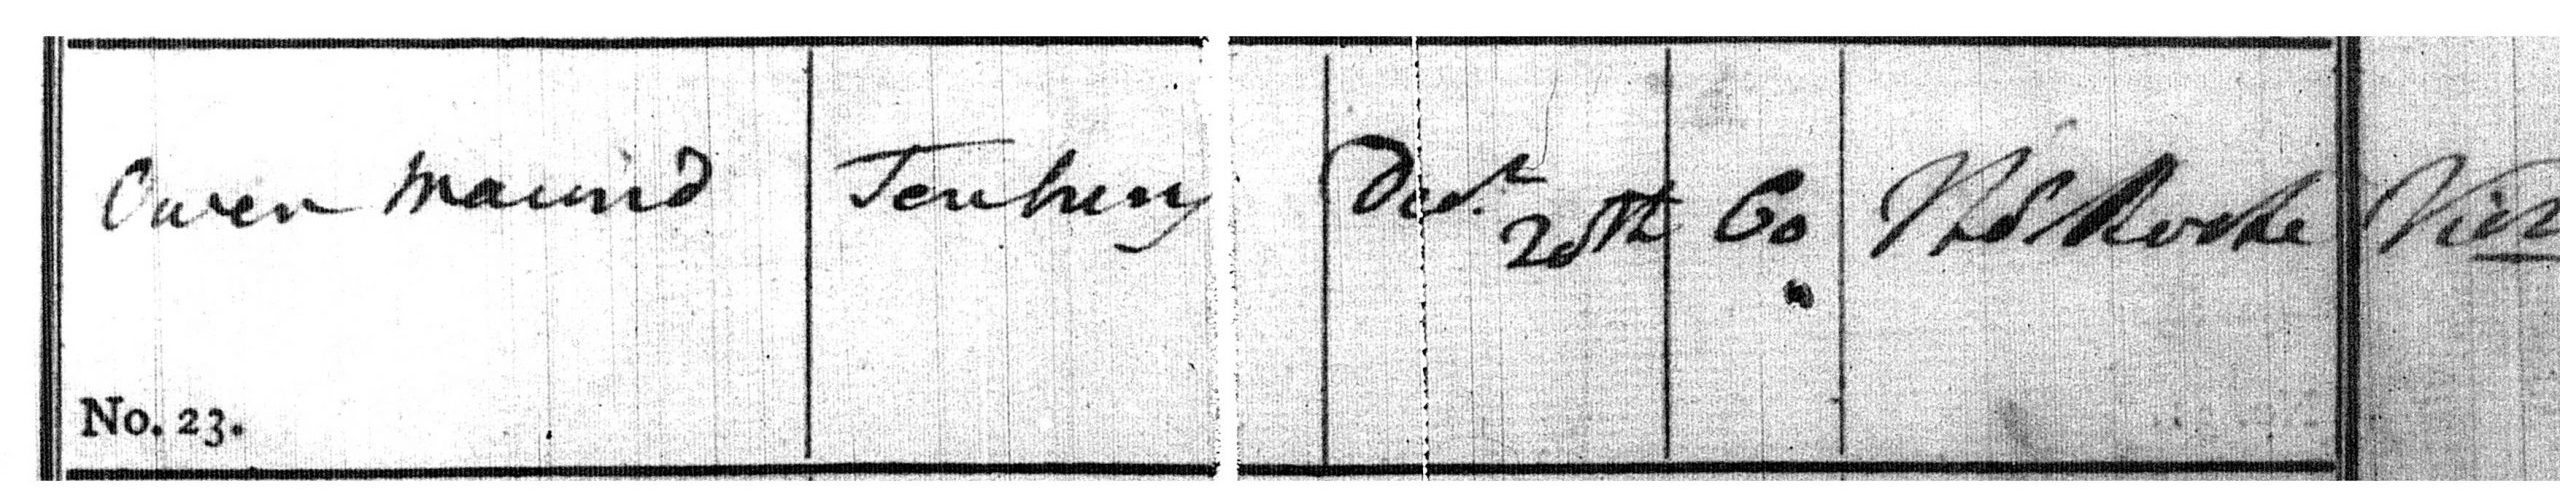 Burial entry of Owen Maund, Tenbury Wells (St. Mary), 25th December 1813